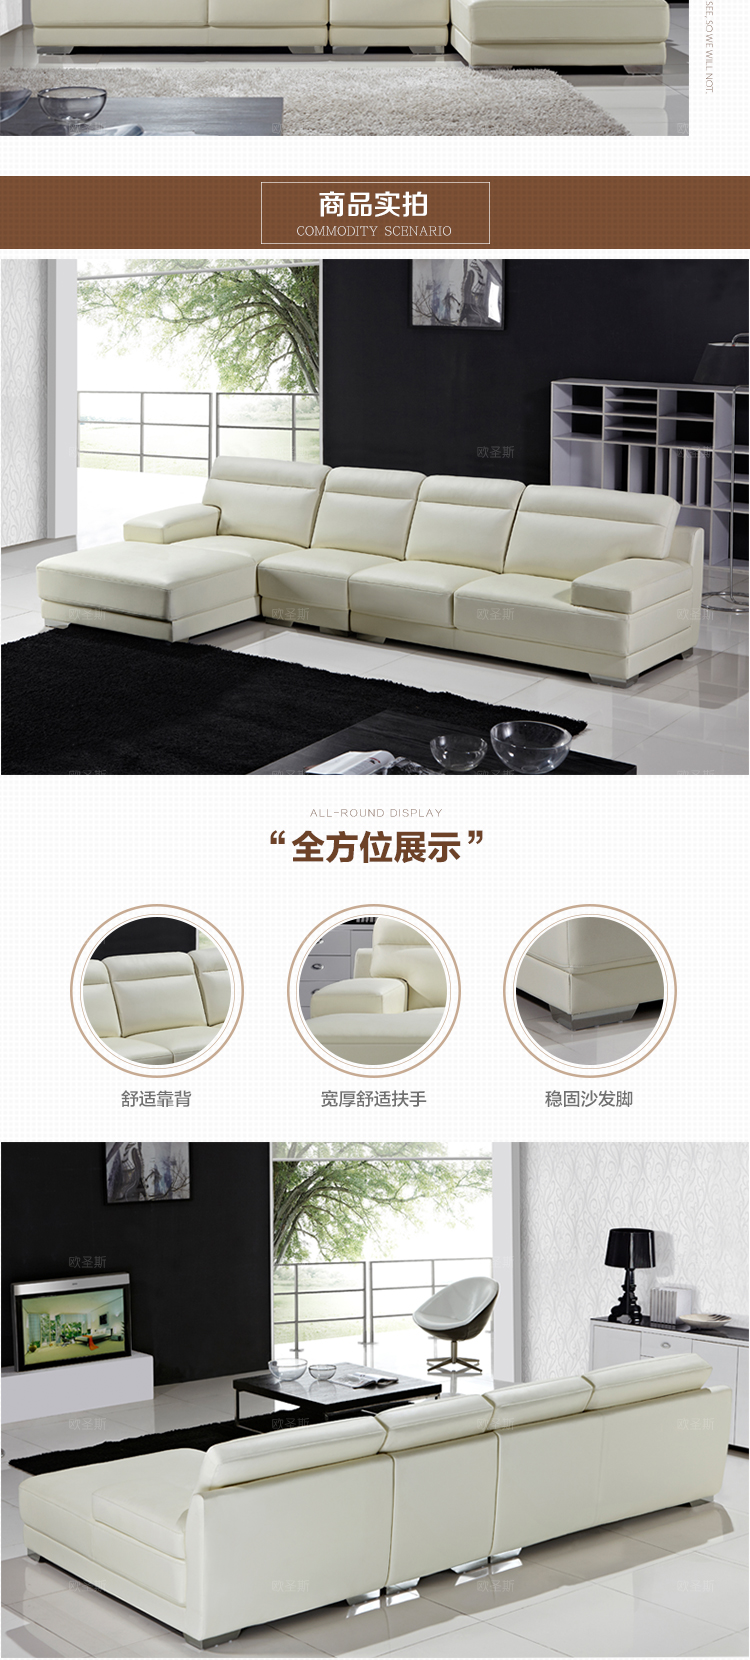 Sofa Set Price New Us 850 Living Room Furniture Latest Sofa Set New Designs 2015 Modern L Shaped Hall Leather Sofa Set Price Single Seater Sofa Chairs 613 In Living